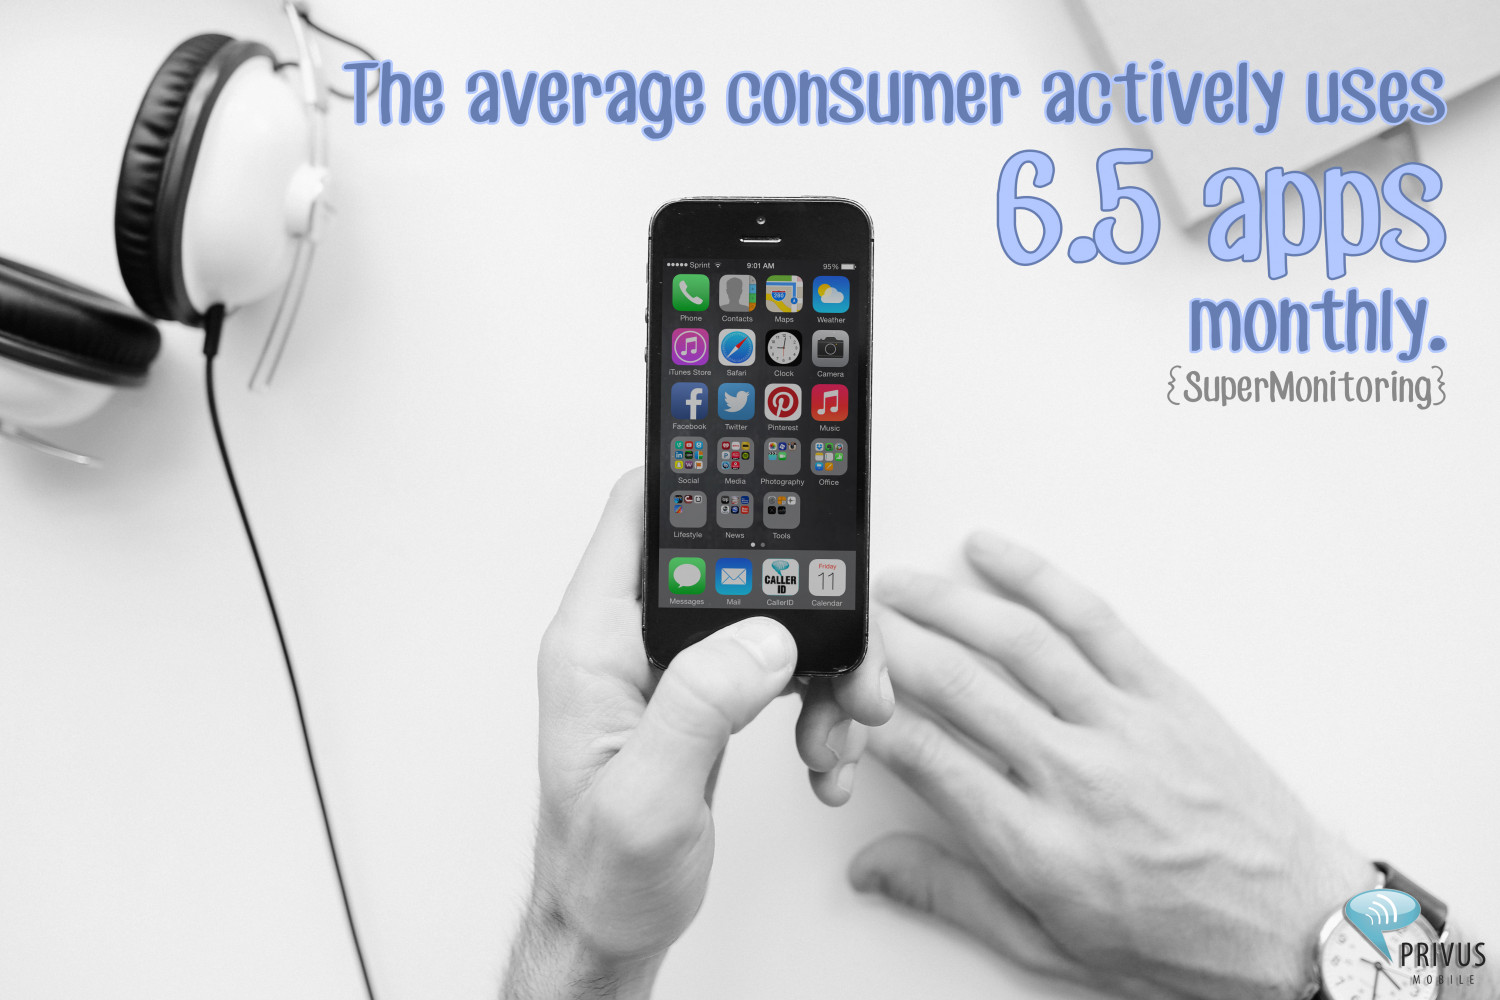 Mobile Fact #4 Infographic